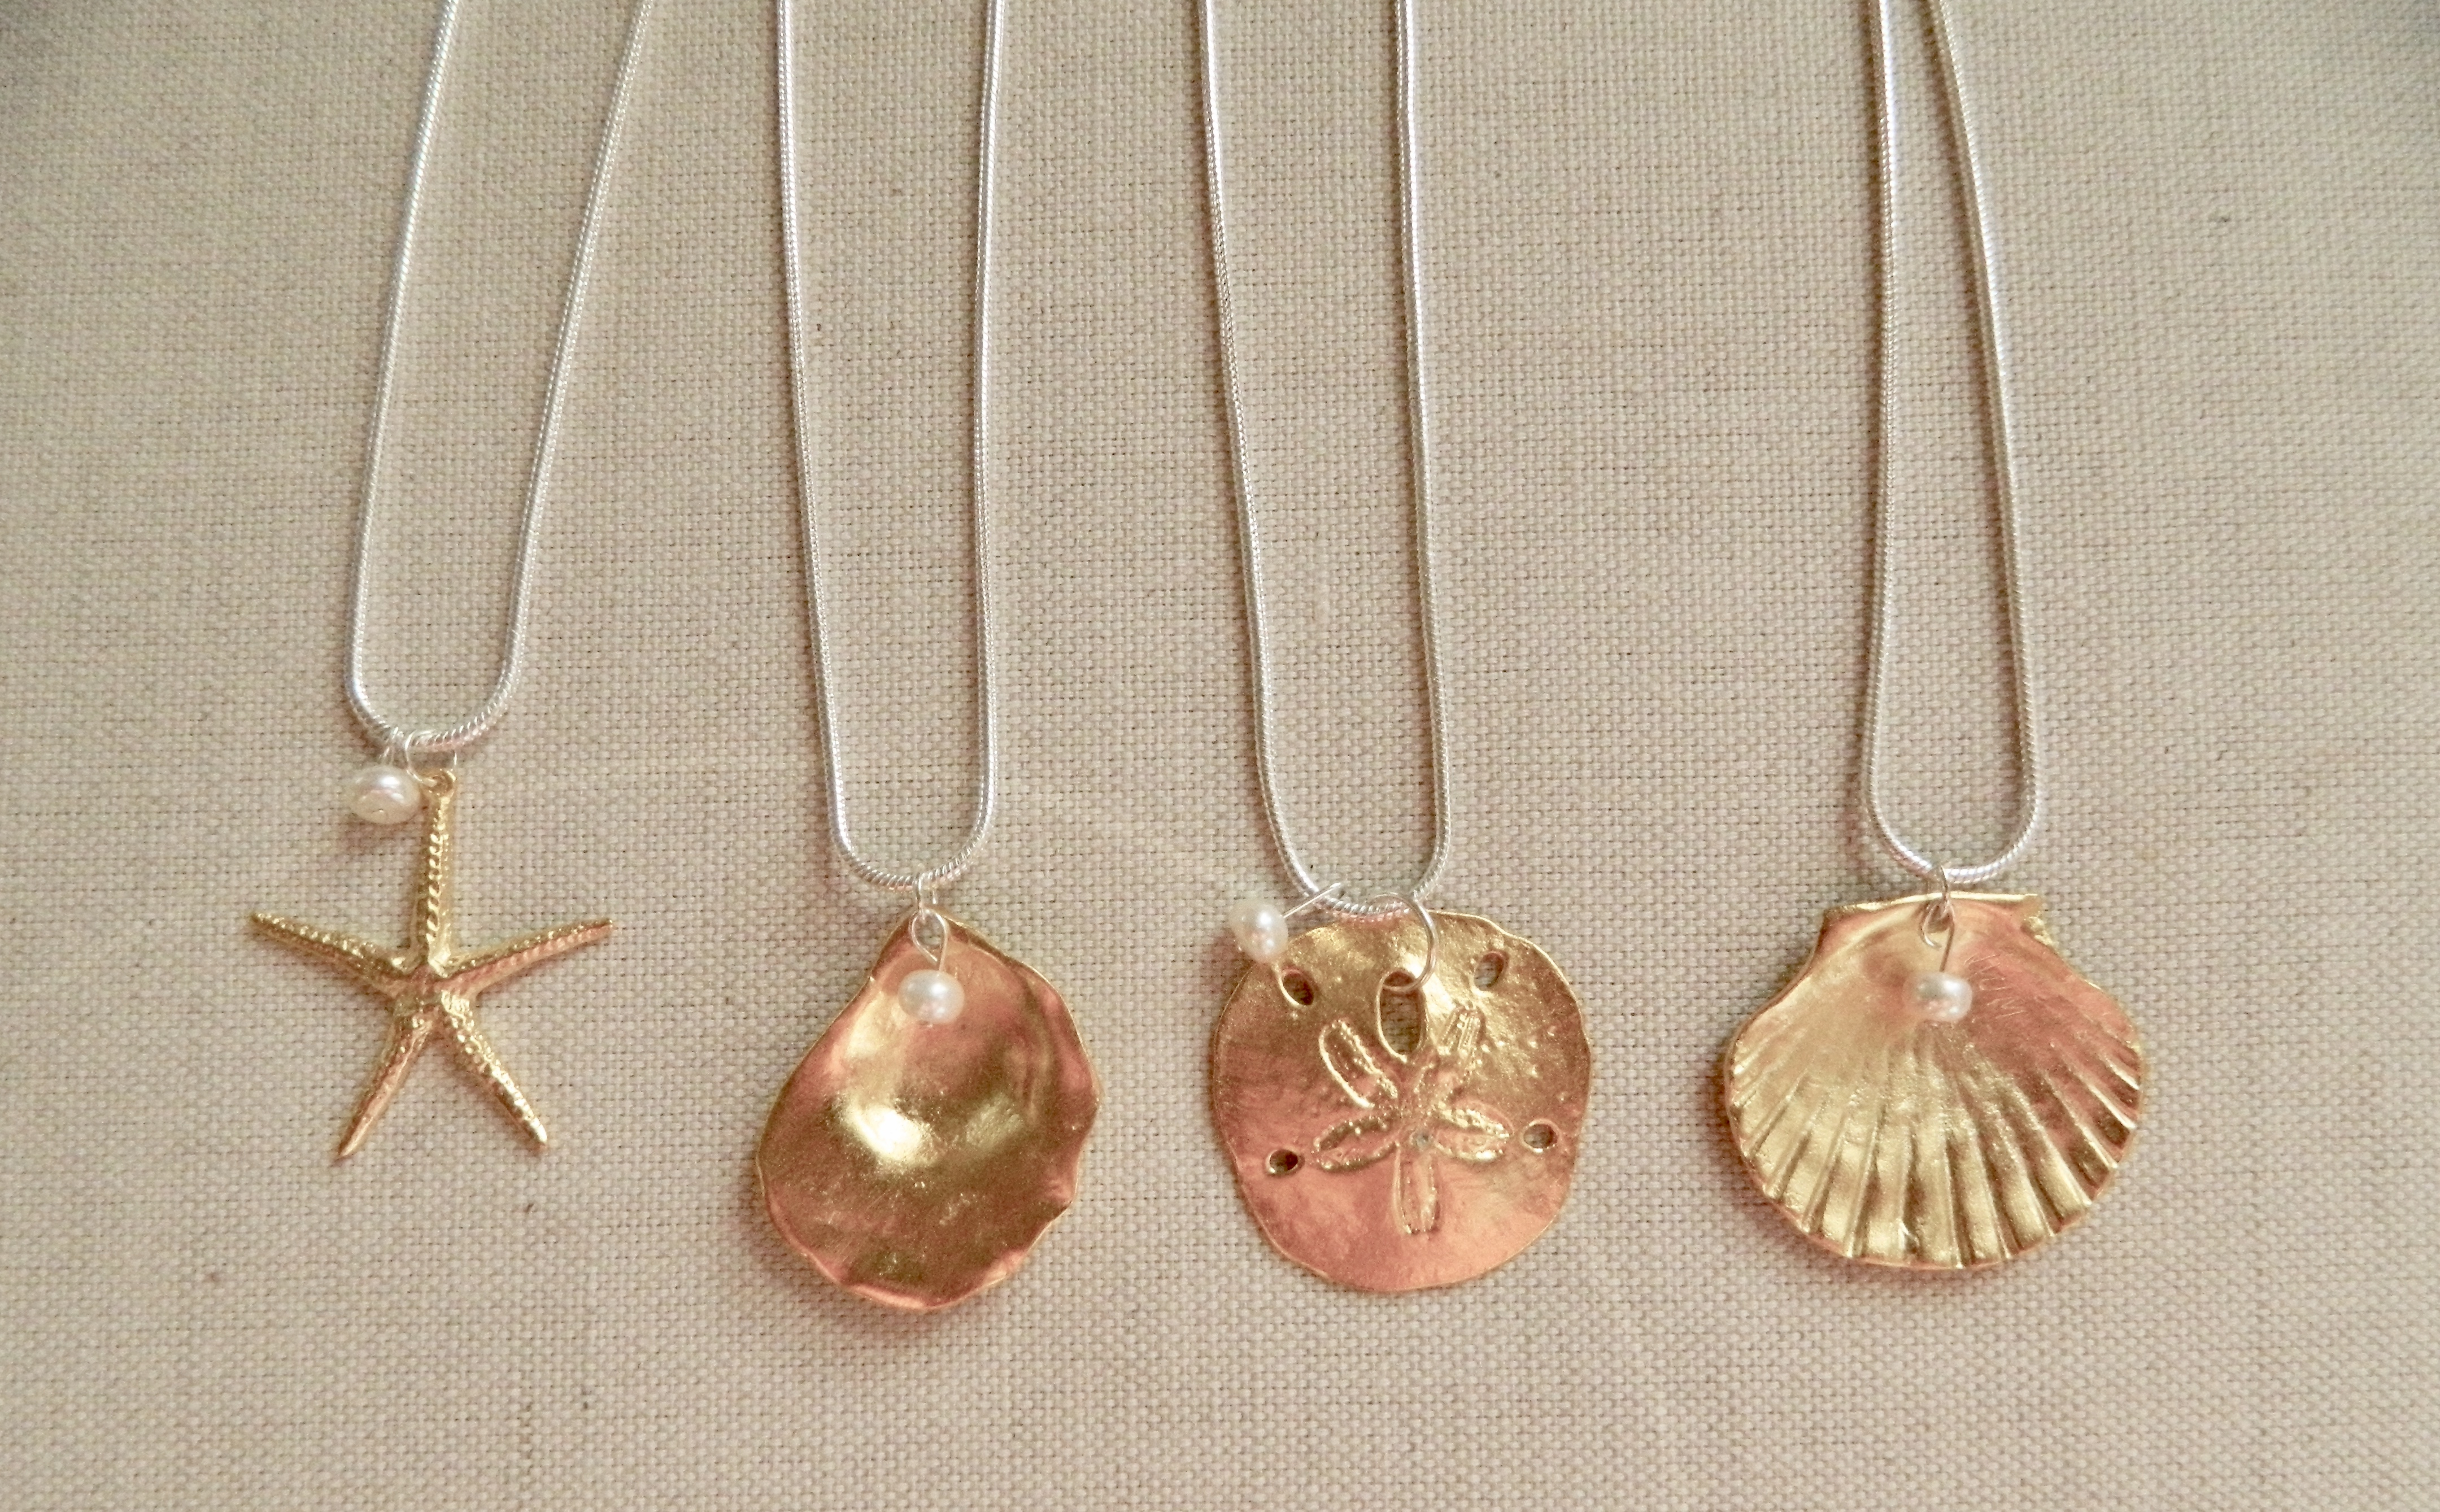 Gold Plate Pendants with Pearl